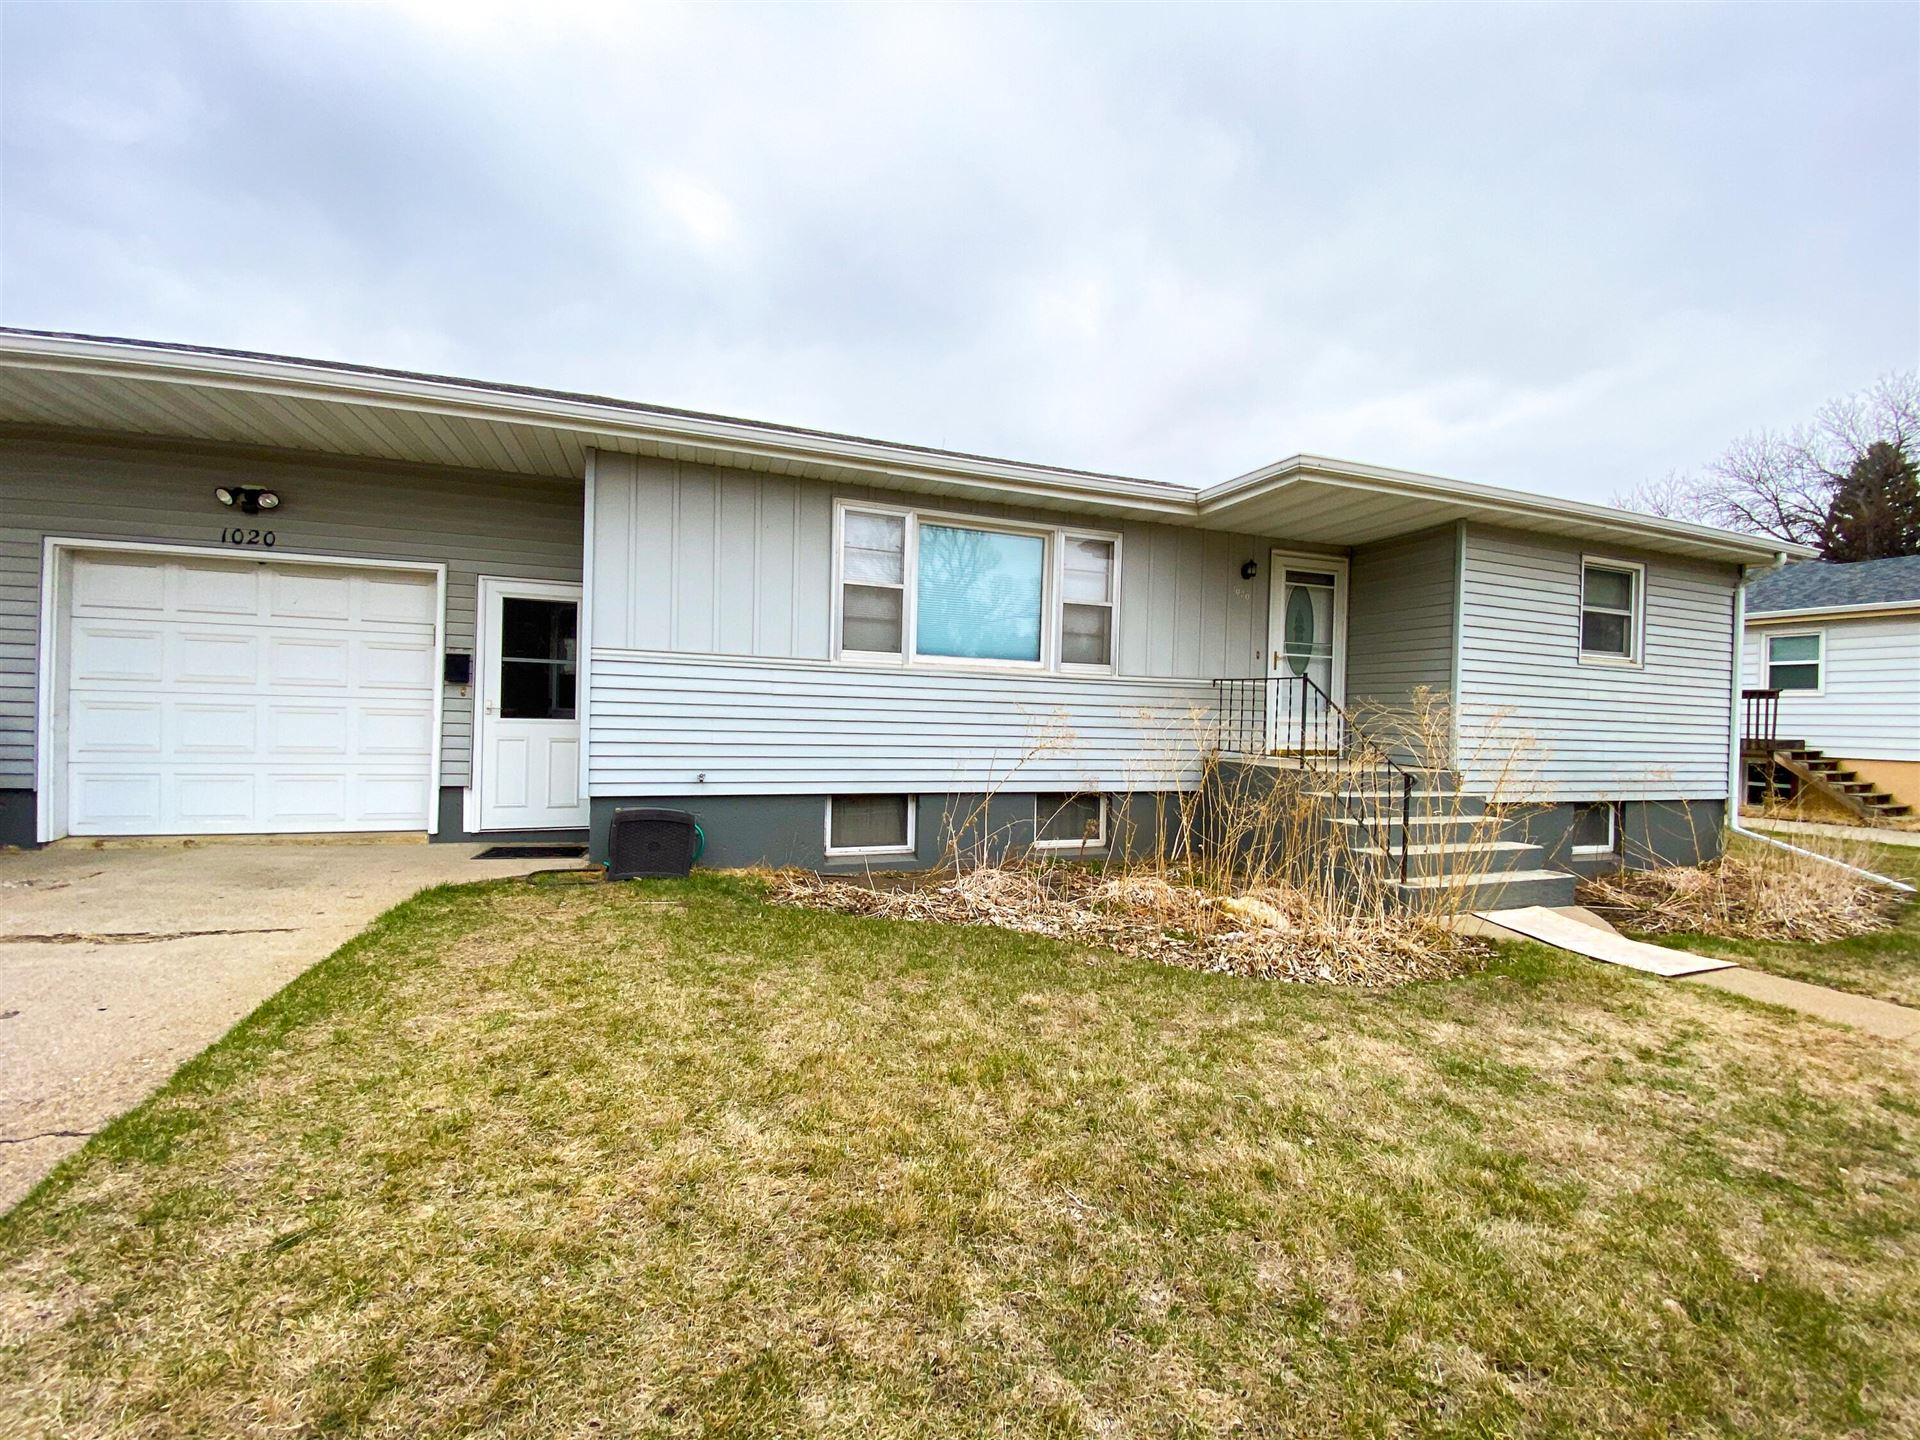 1020 N 16th Street, Bismarck, ND 58501 - #: 410465